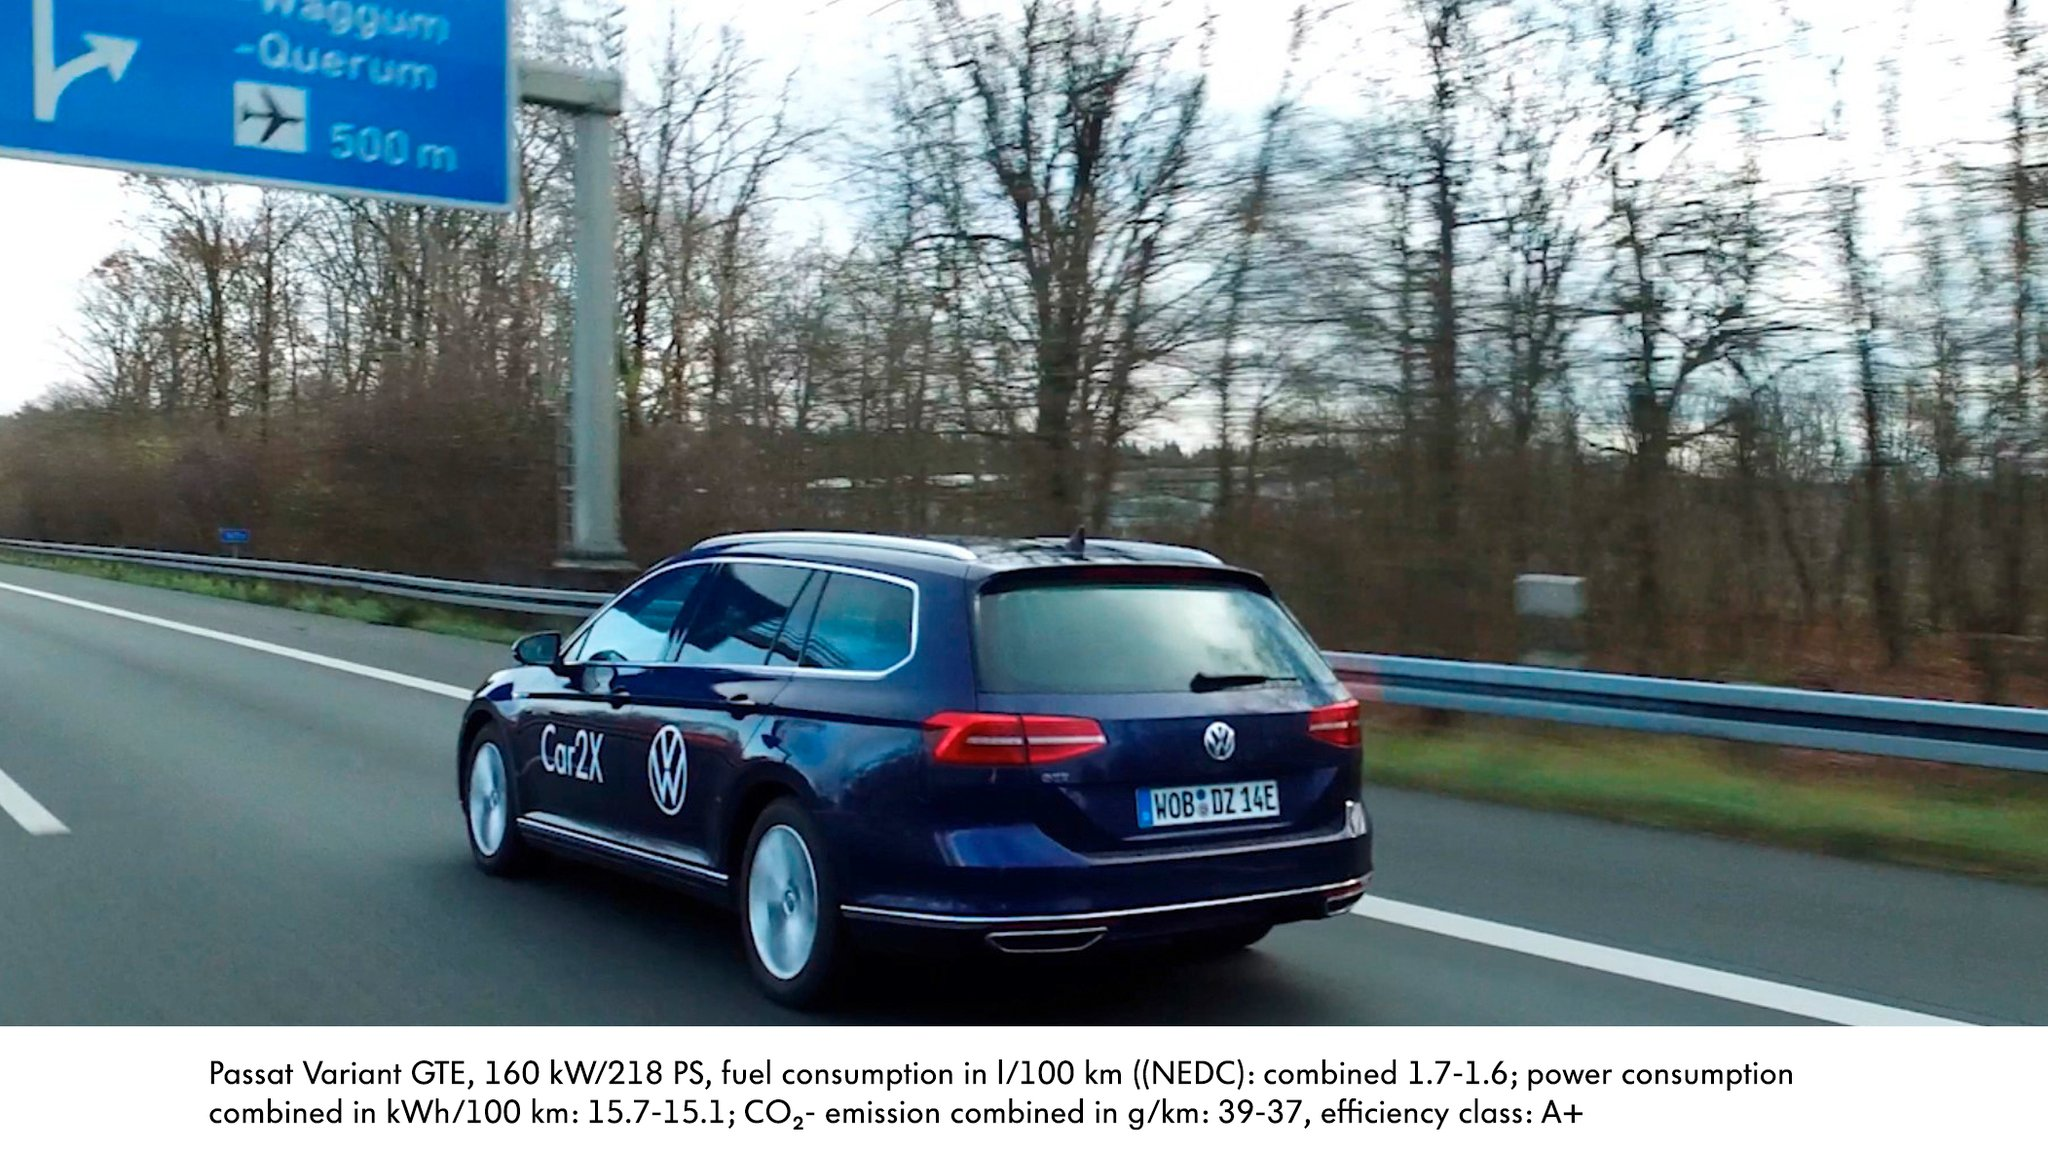 Volkswagen News On Twitter Starting Signal For Testfeld Niedersachsen Using The Stretch Of Road Which Has Been Financed By The State Of Lower Saxony And The Dlr Volkswagen Hoped To Gather New